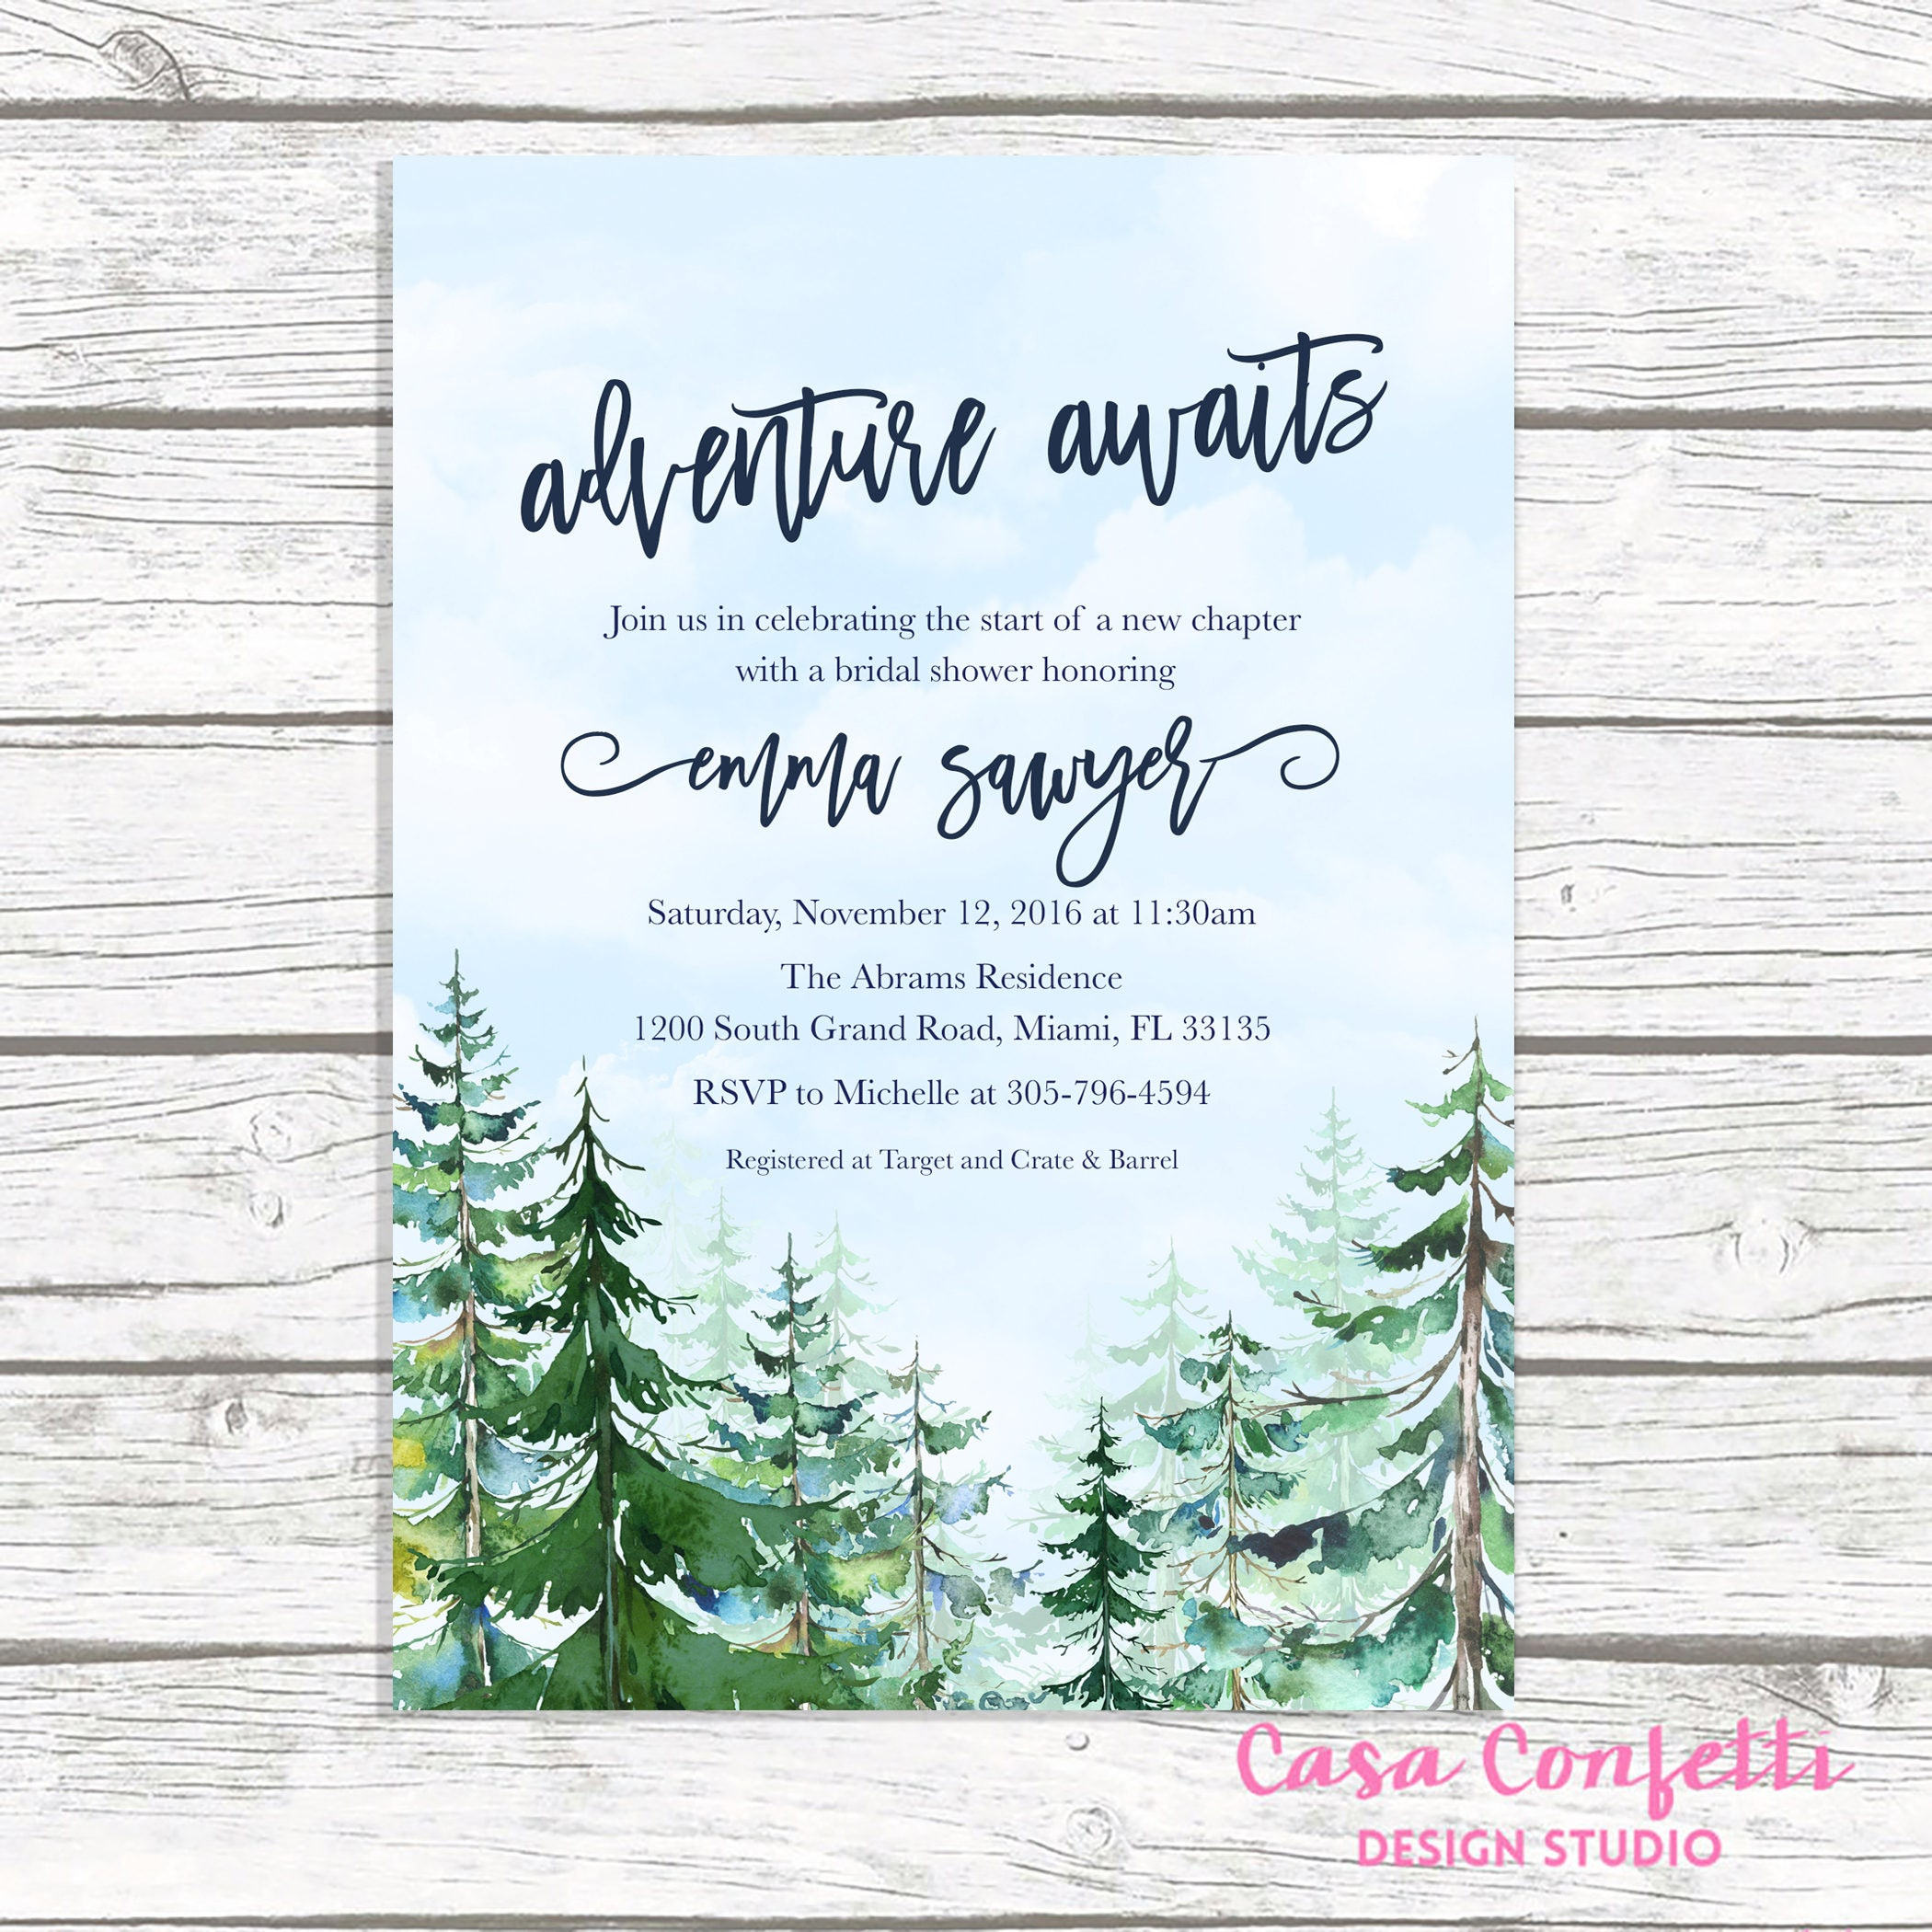 Adventure bridal shower invitation mountain bridal shower adventure bridal shower invitation mountain bridal shower invitation conifer trees bridal shower winter bridal shower adventure awaits filmwisefo Choice Image